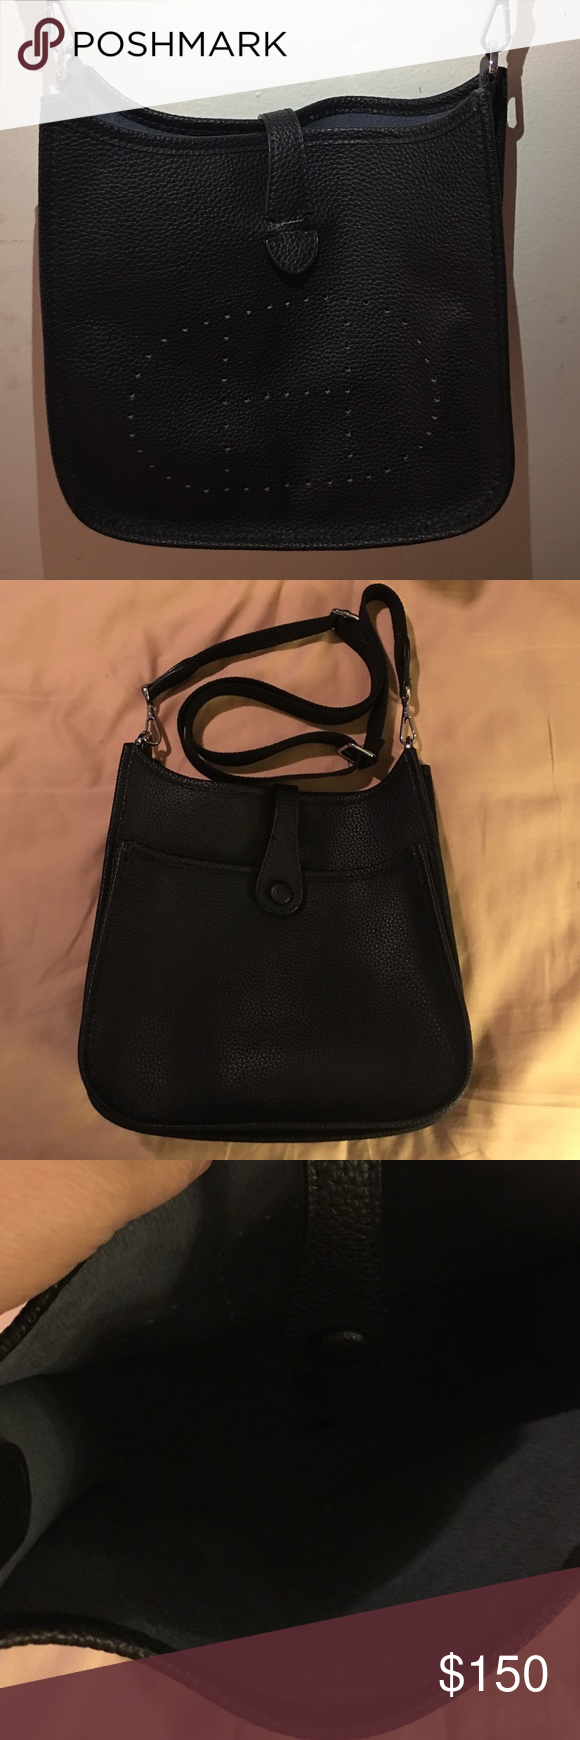 "Beautiful H bag Beautiful H bag black leather crossbody 11""x9"" Bags Crossbody Bags"